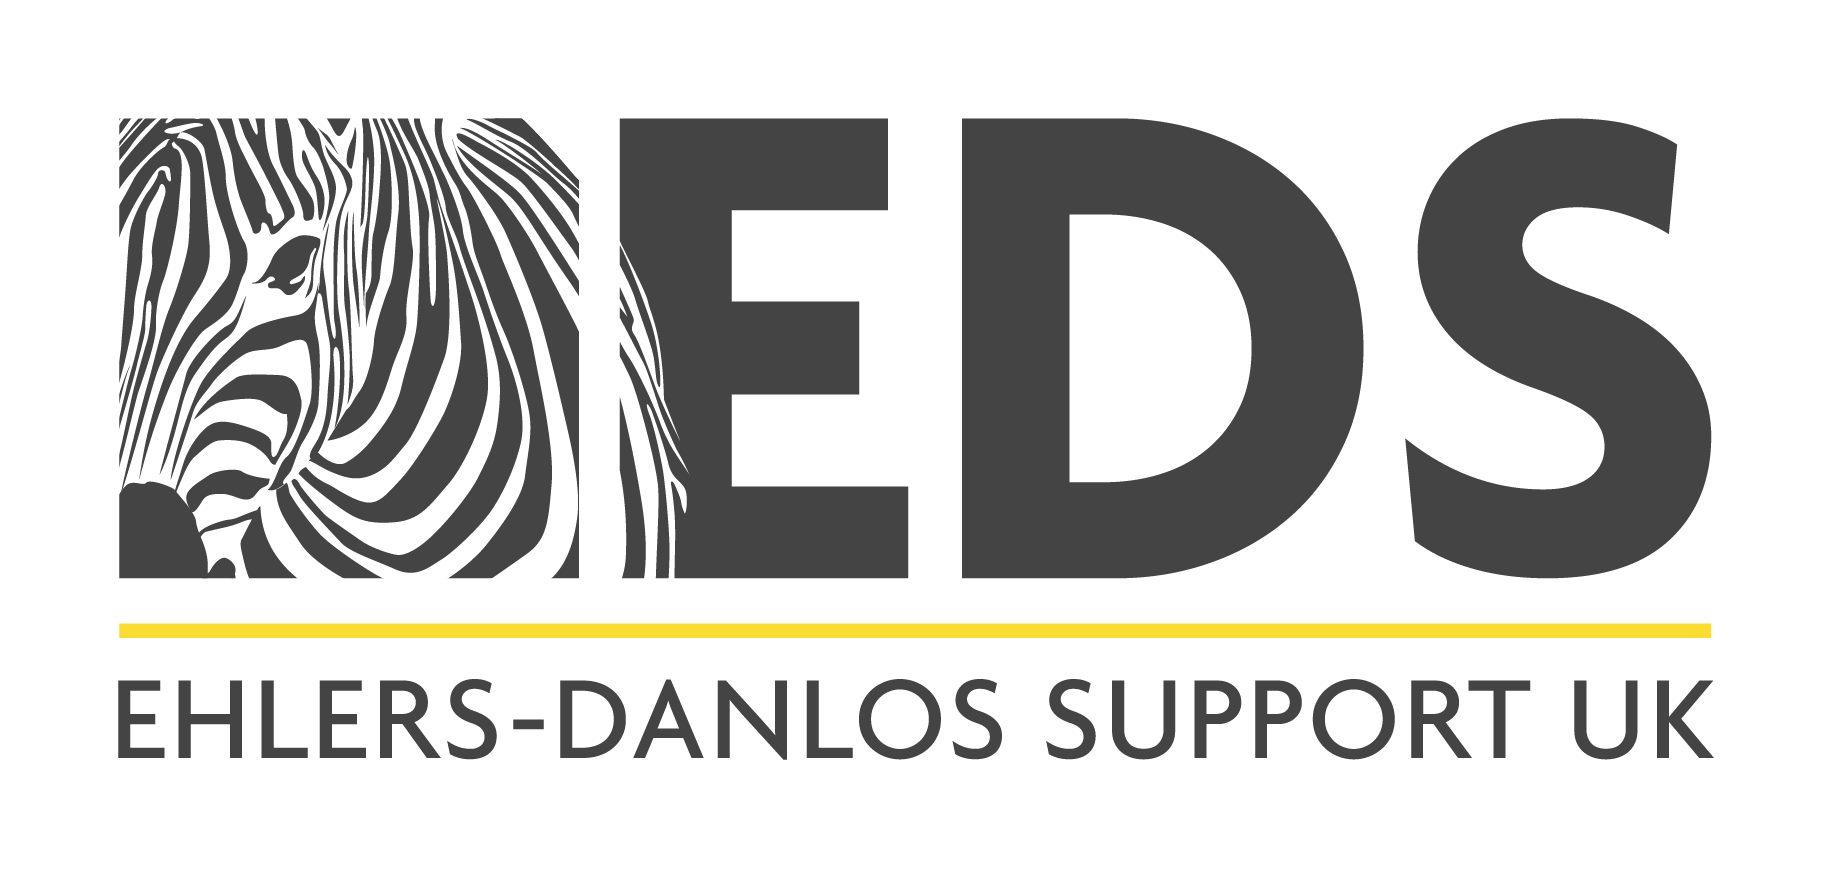 Copy of Copy of Ehlers-Danlos Support UK